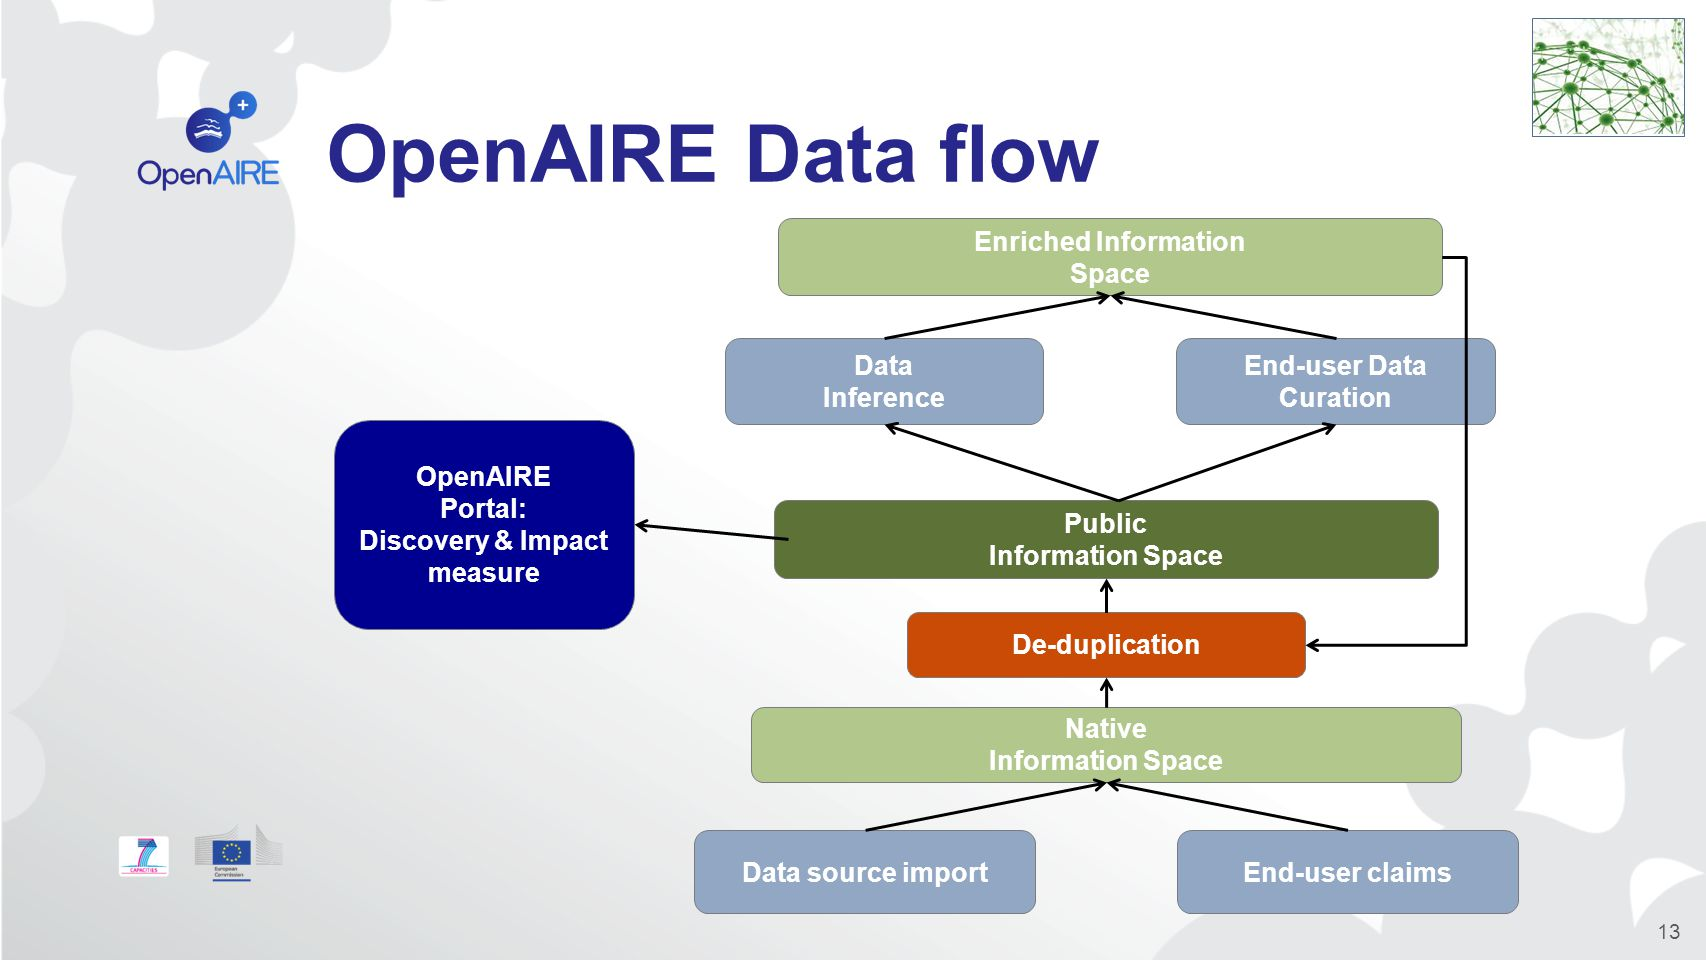 OpenAIRE Data flow 13 Data source importEnd-user claims Native Information Space De-duplication Public Information Space Data Inference End-user Data Curation Enriched Information Space OpenAIRE Portal: Discovery & Impact measure